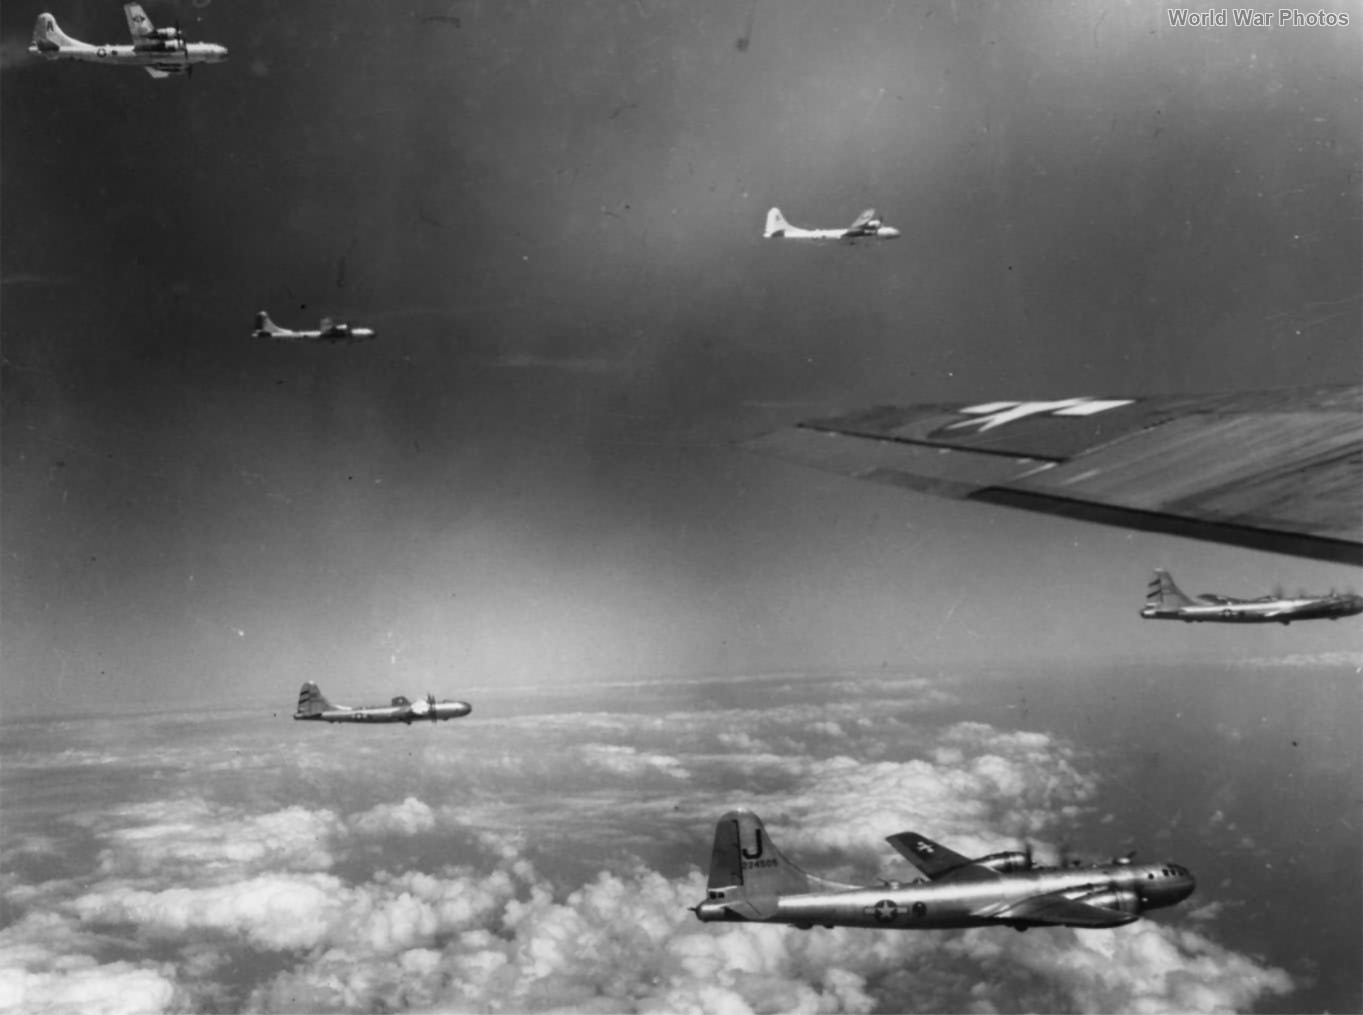 B-29 42-24505 of the 462nd BG over Formosa